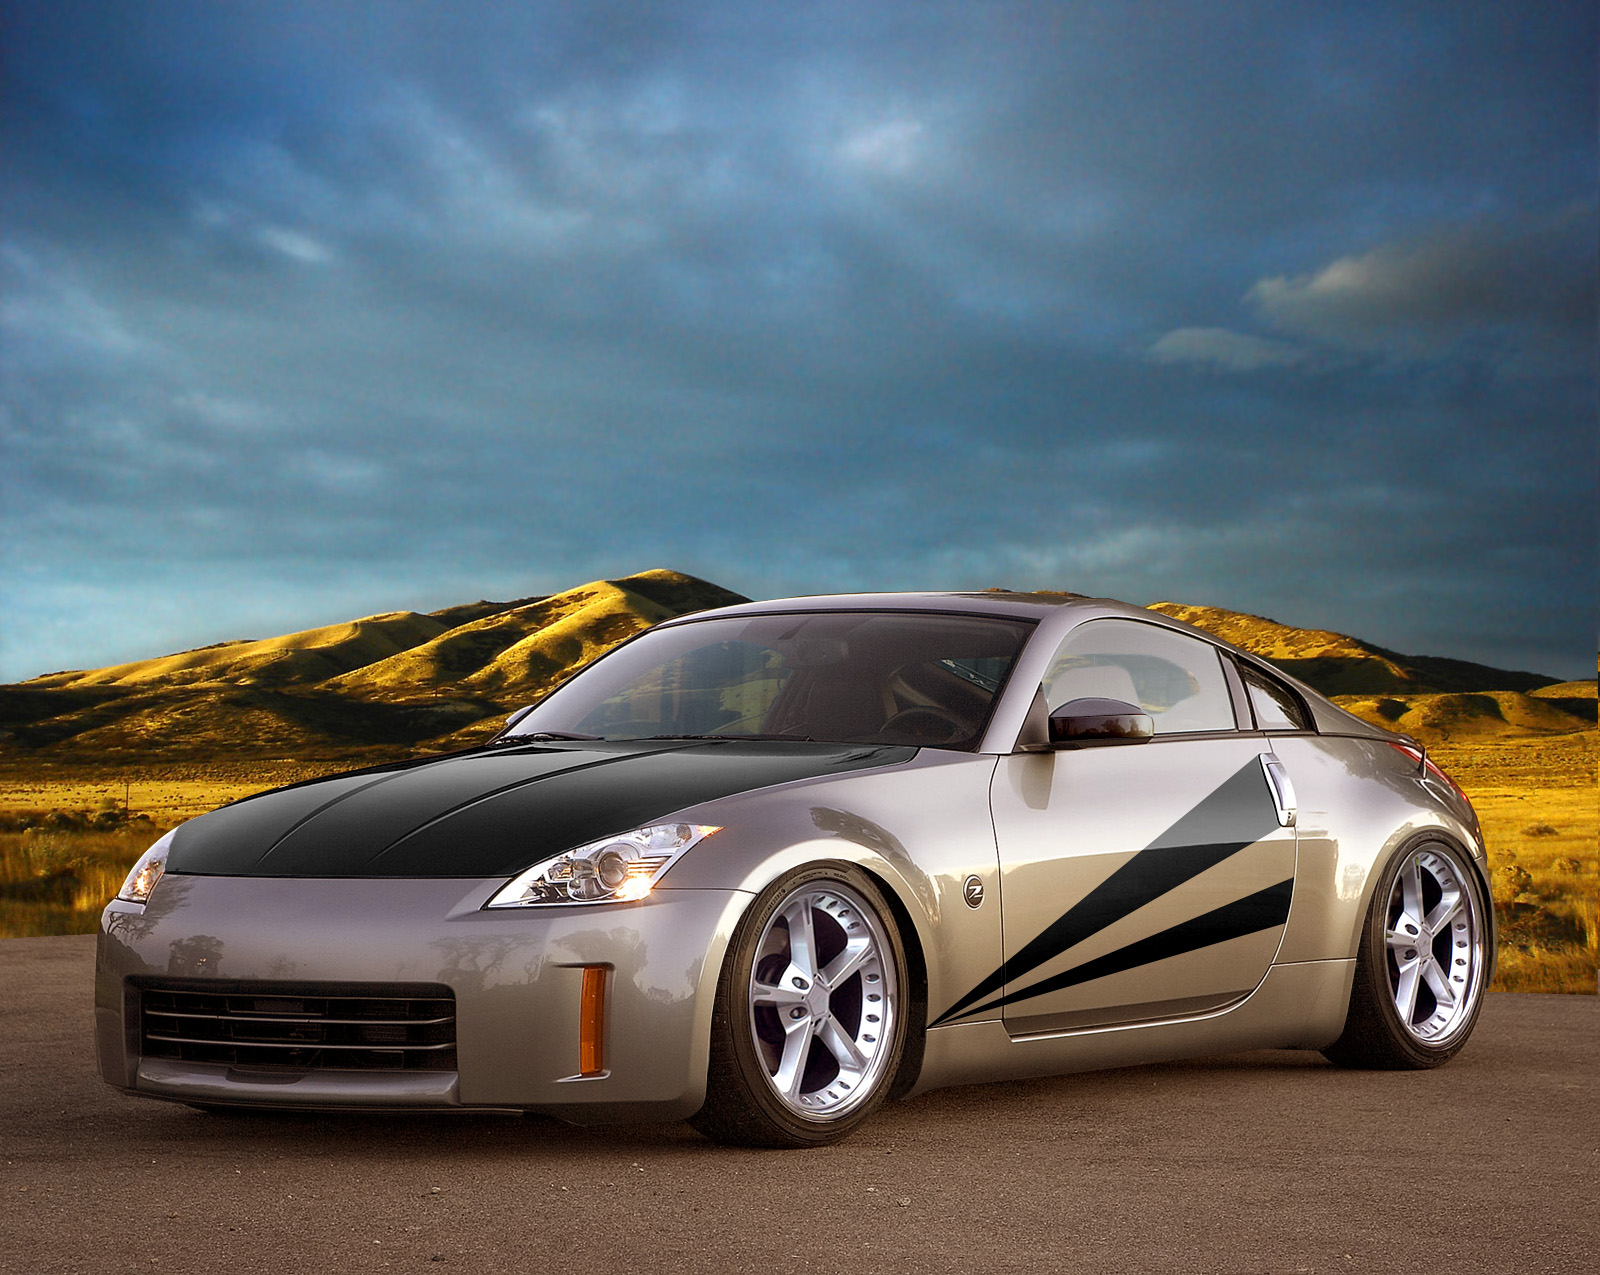 free cars hd wallpapers nissan 350z tuning hd wallpapers. Black Bedroom Furniture Sets. Home Design Ideas